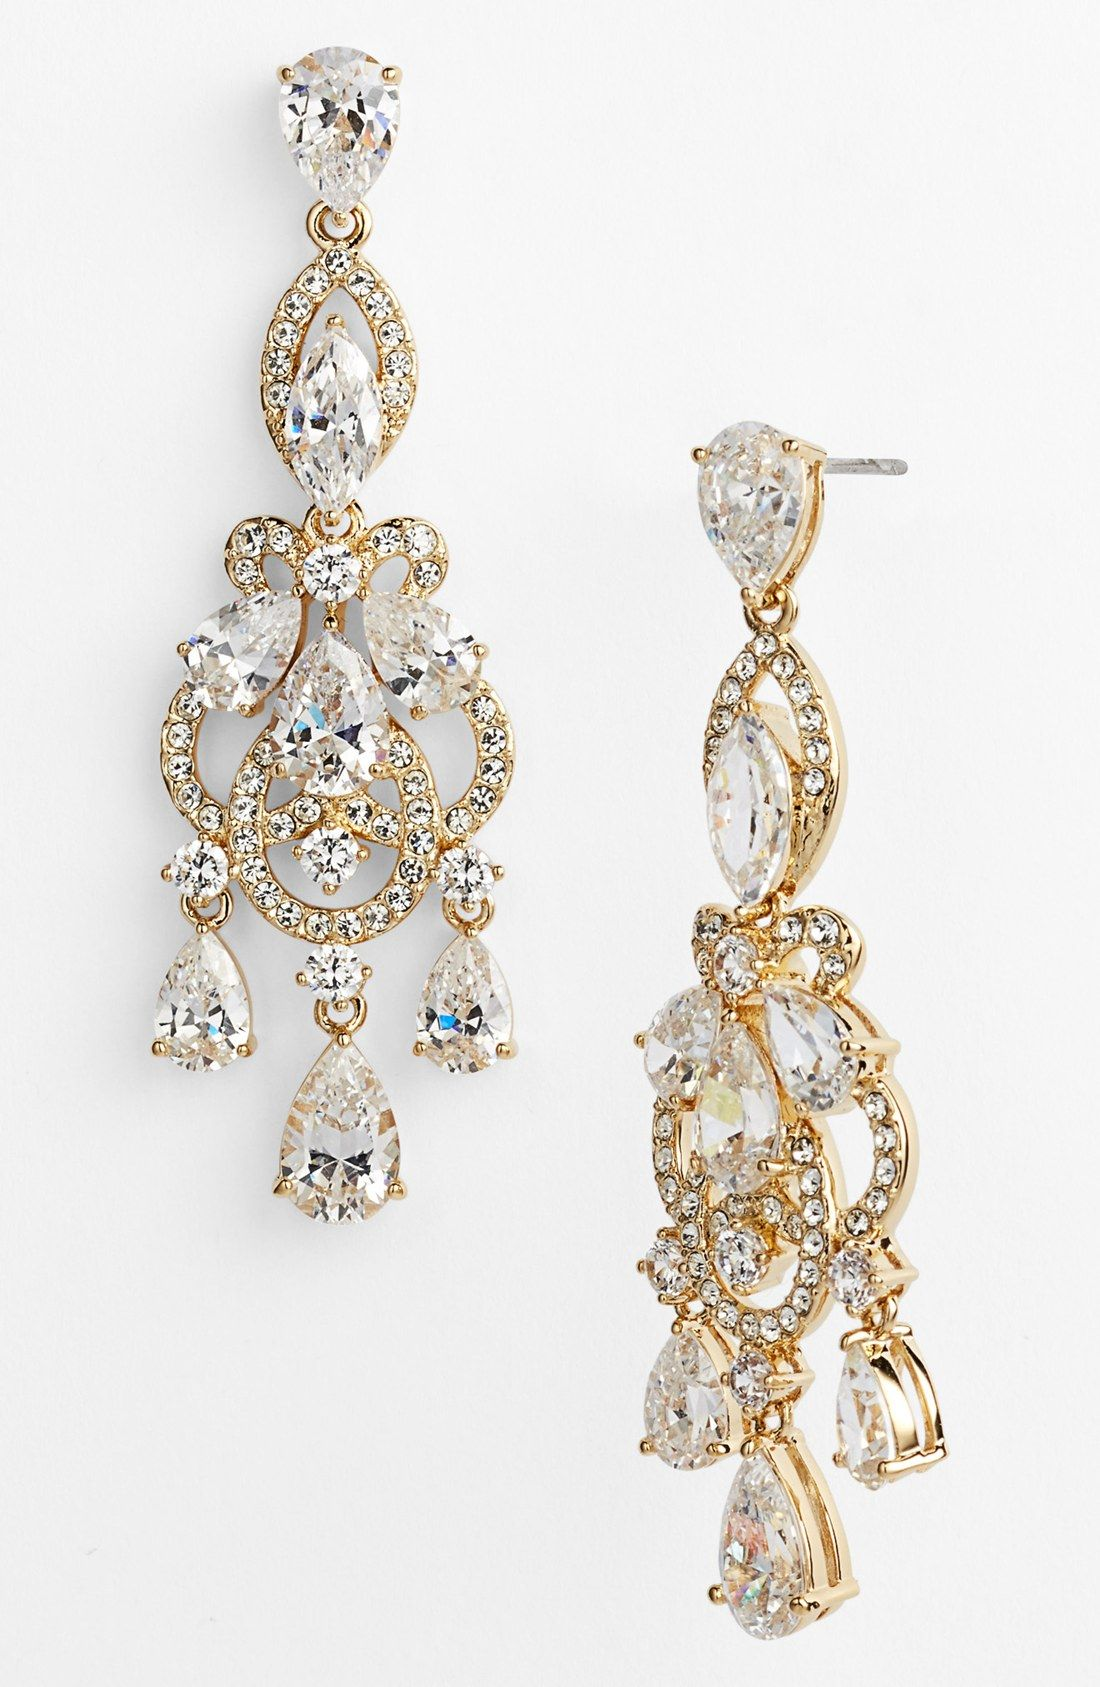 These Gold And Crystal Chandelier Earrings Will Be Perfect For A Bride